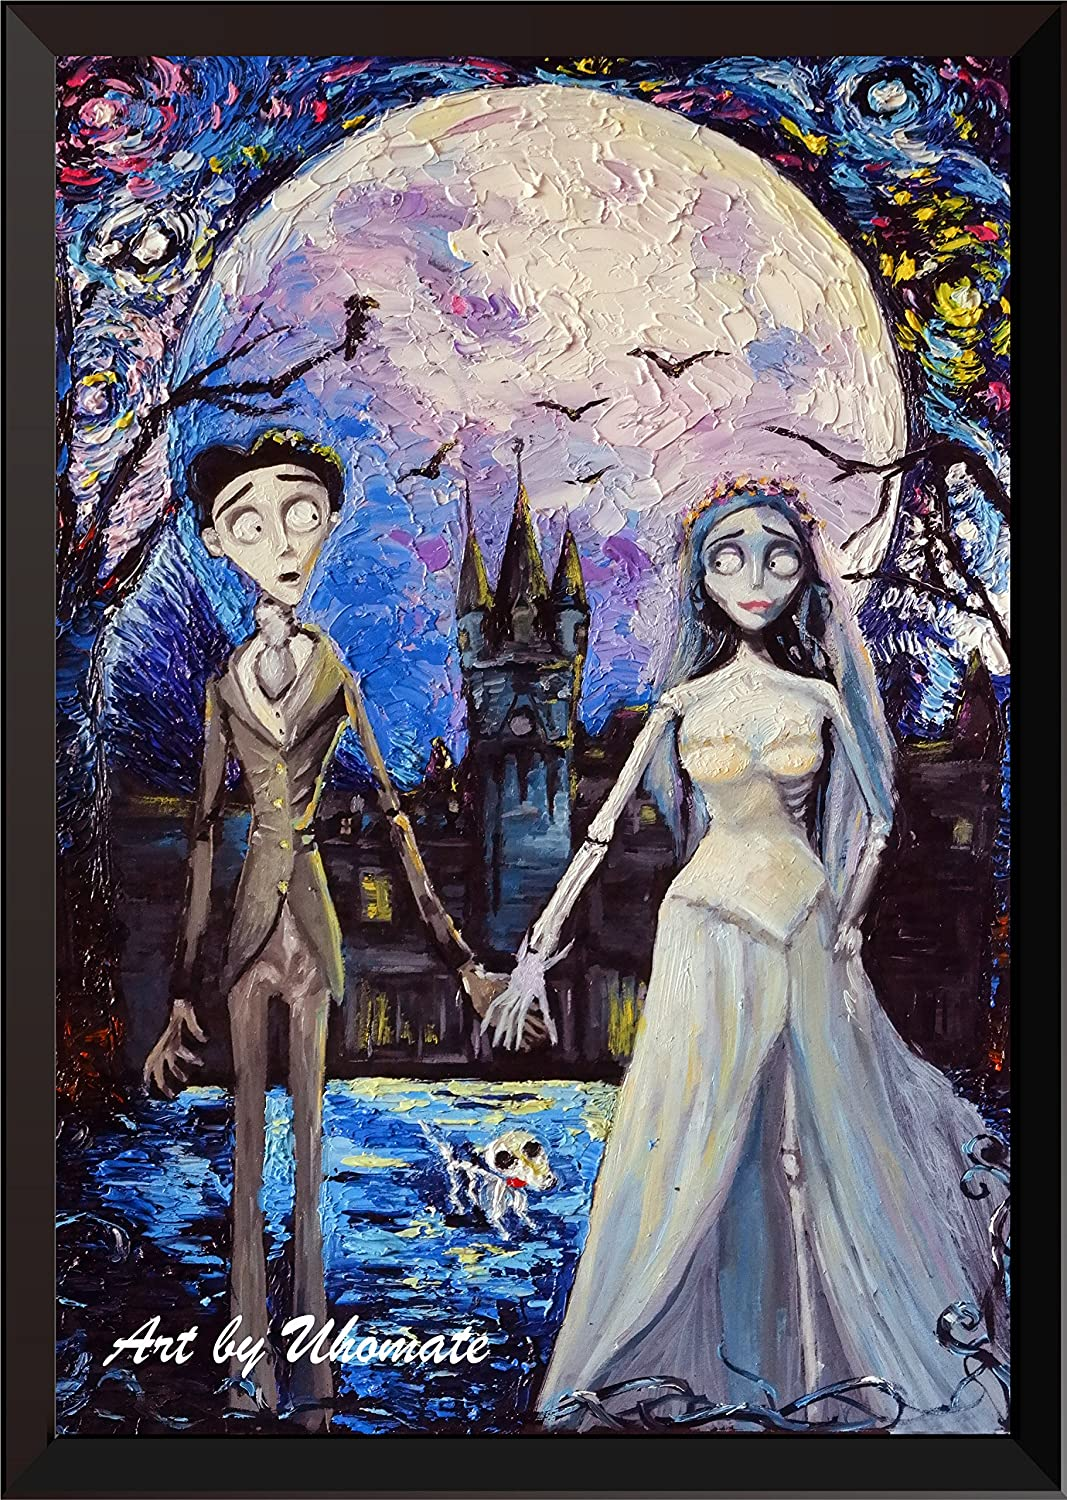 Uhomate Corpse Bride Victor and Emily Wall Decor Vincent Van Gogh Starry Night Posters Home Canvas Wall Art Print Baby Gift Nursery Decor Living Room Wall Decor A087 (11X14)